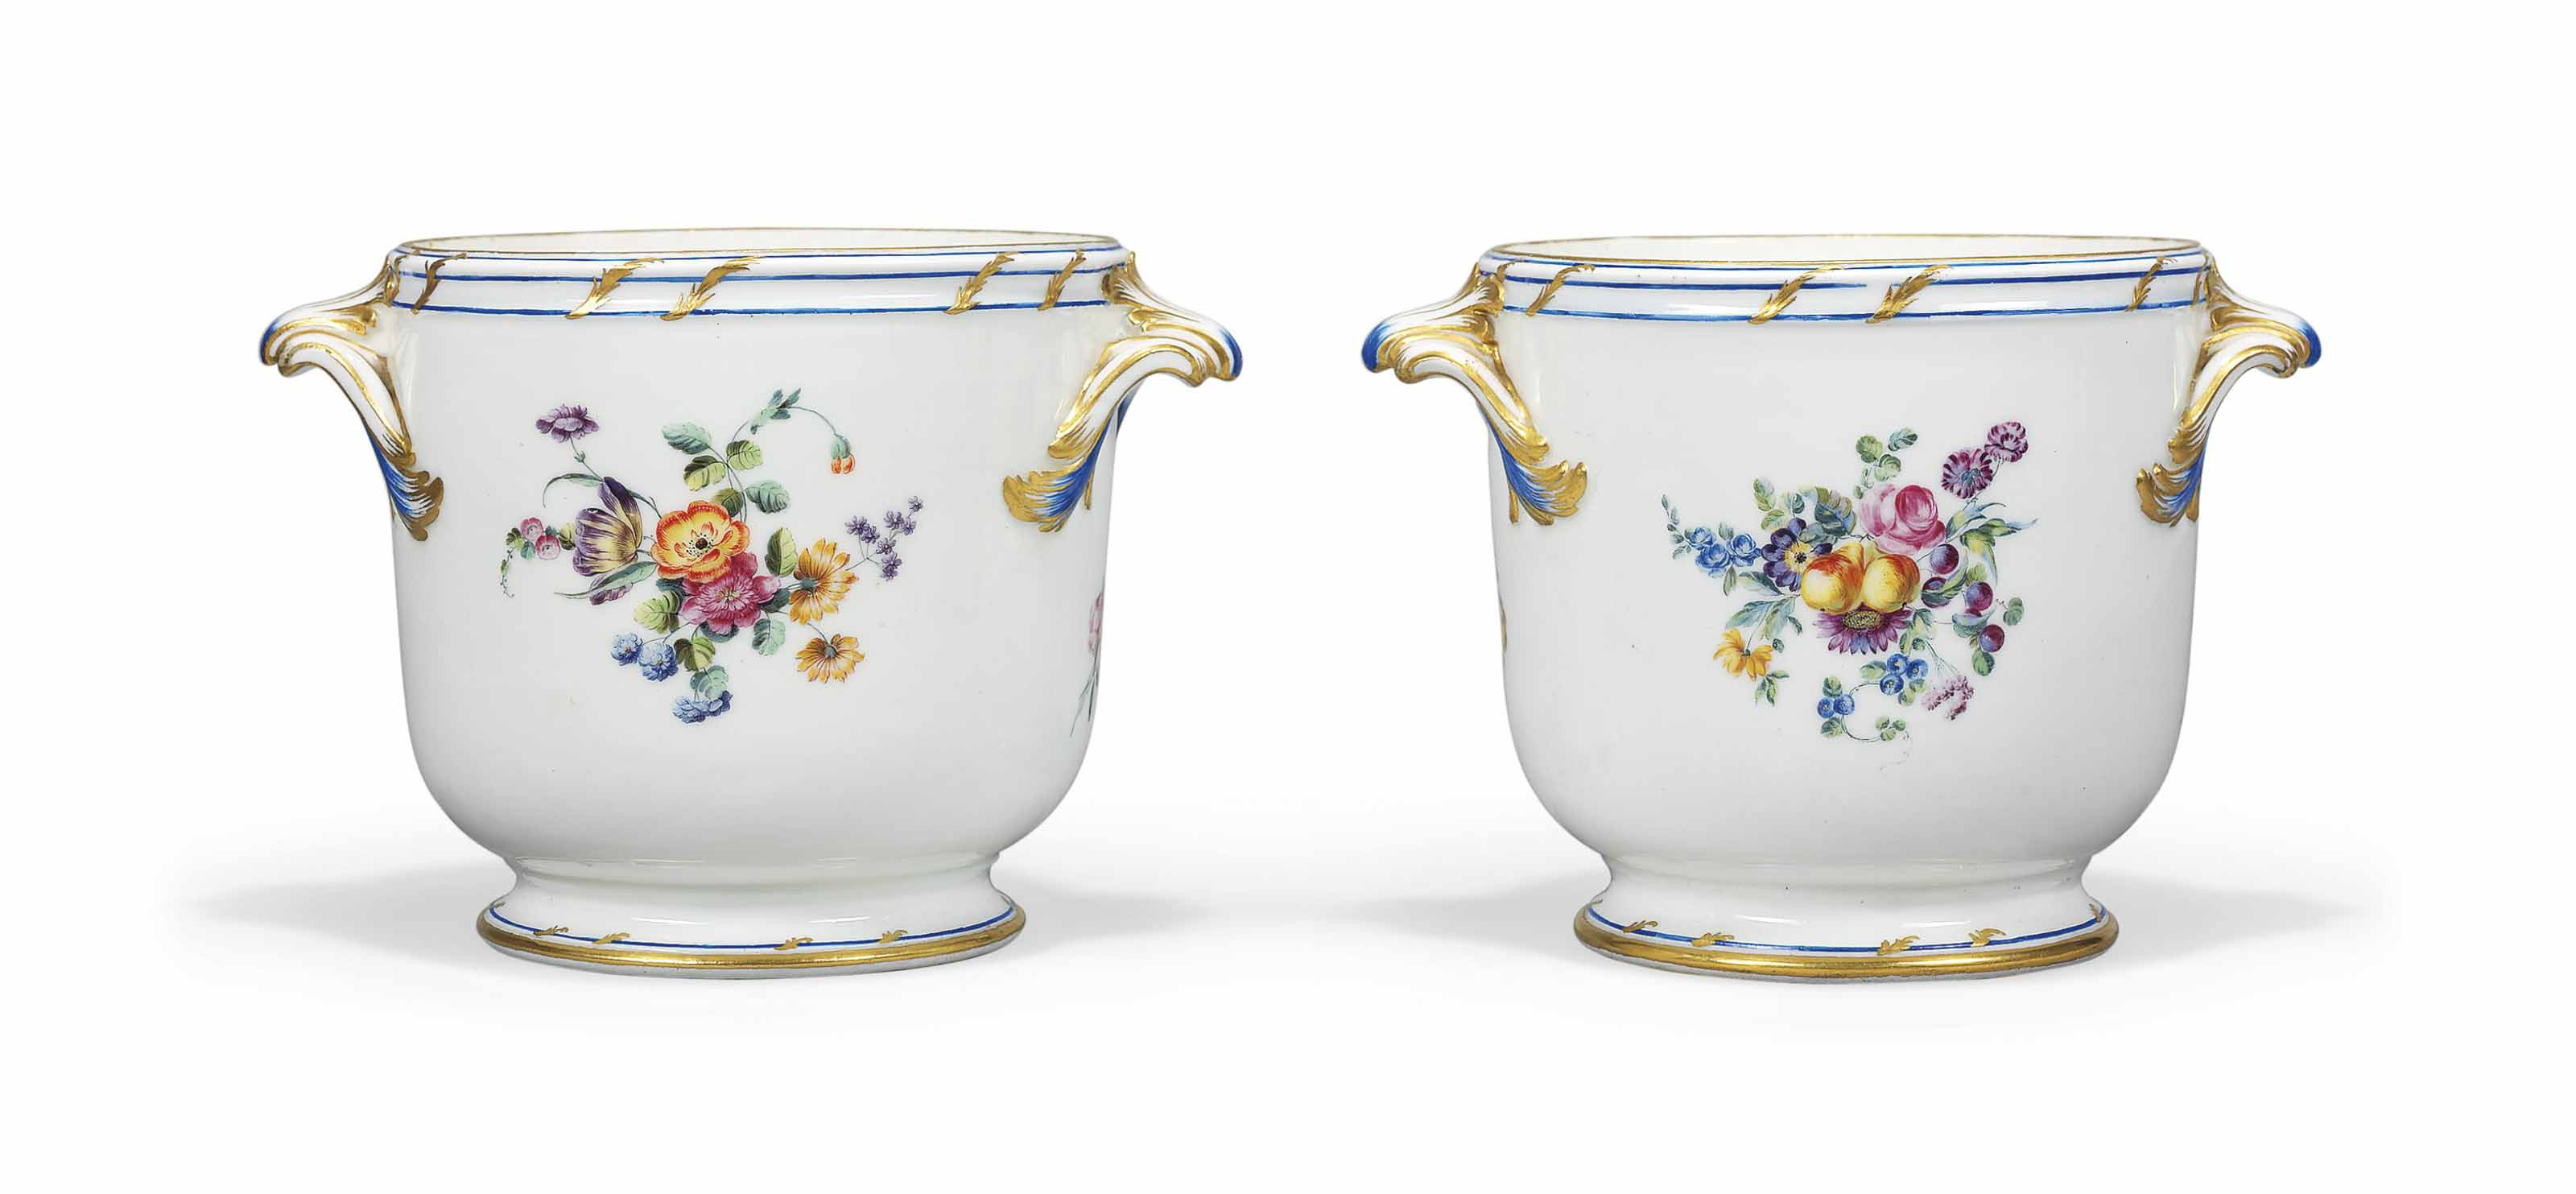 A PAIR OF VINCENNES BOTTLE-COO